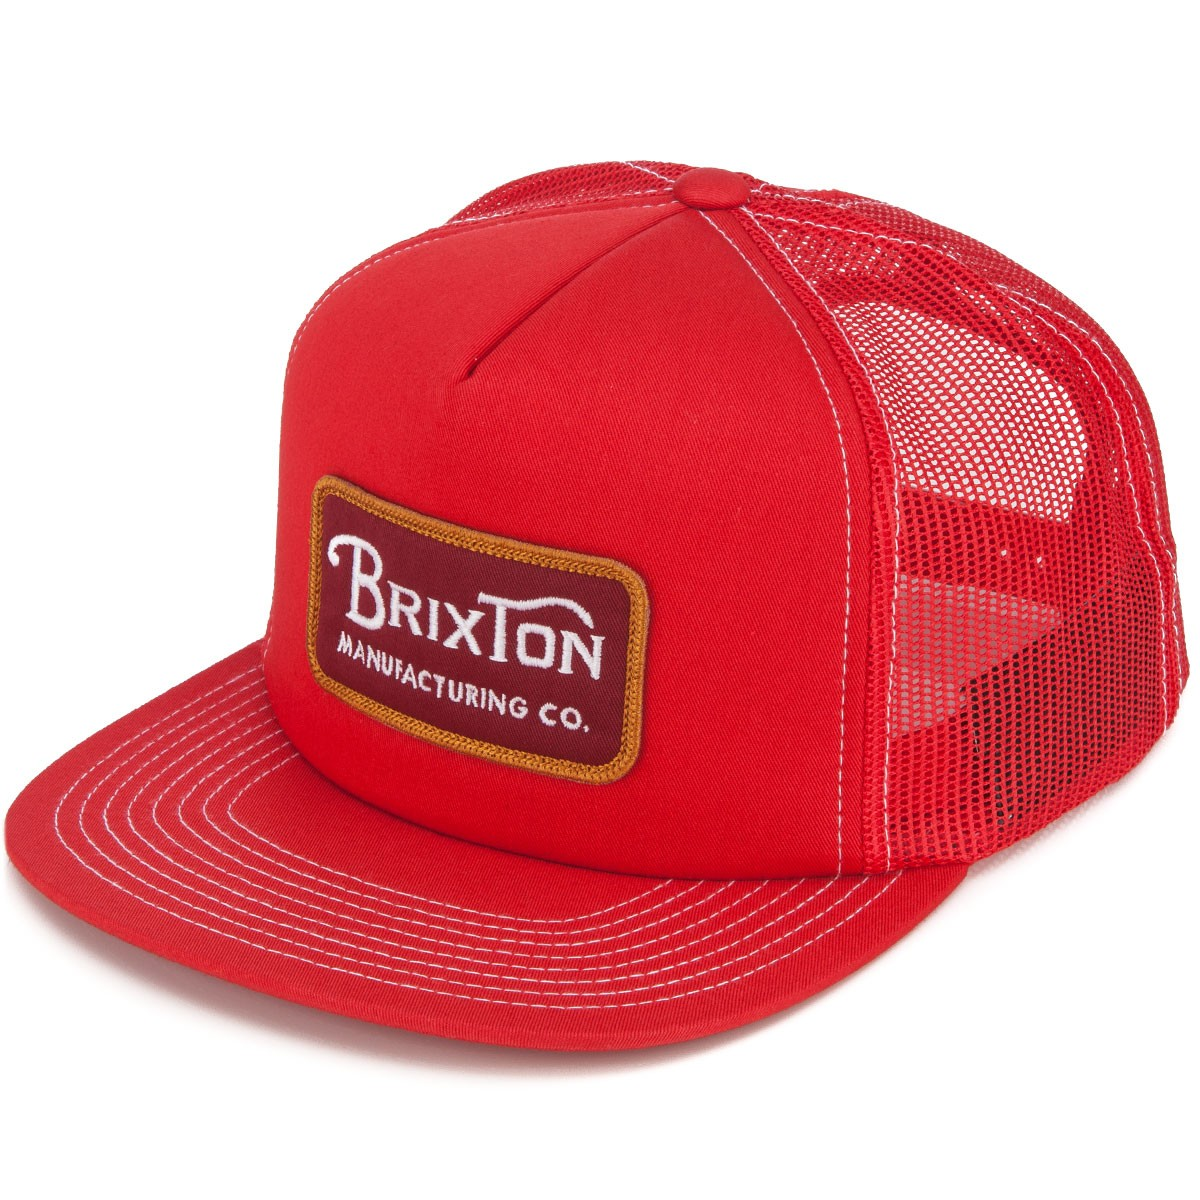 Brixton Grade Mesh Hat - Red 5a51a59642ee